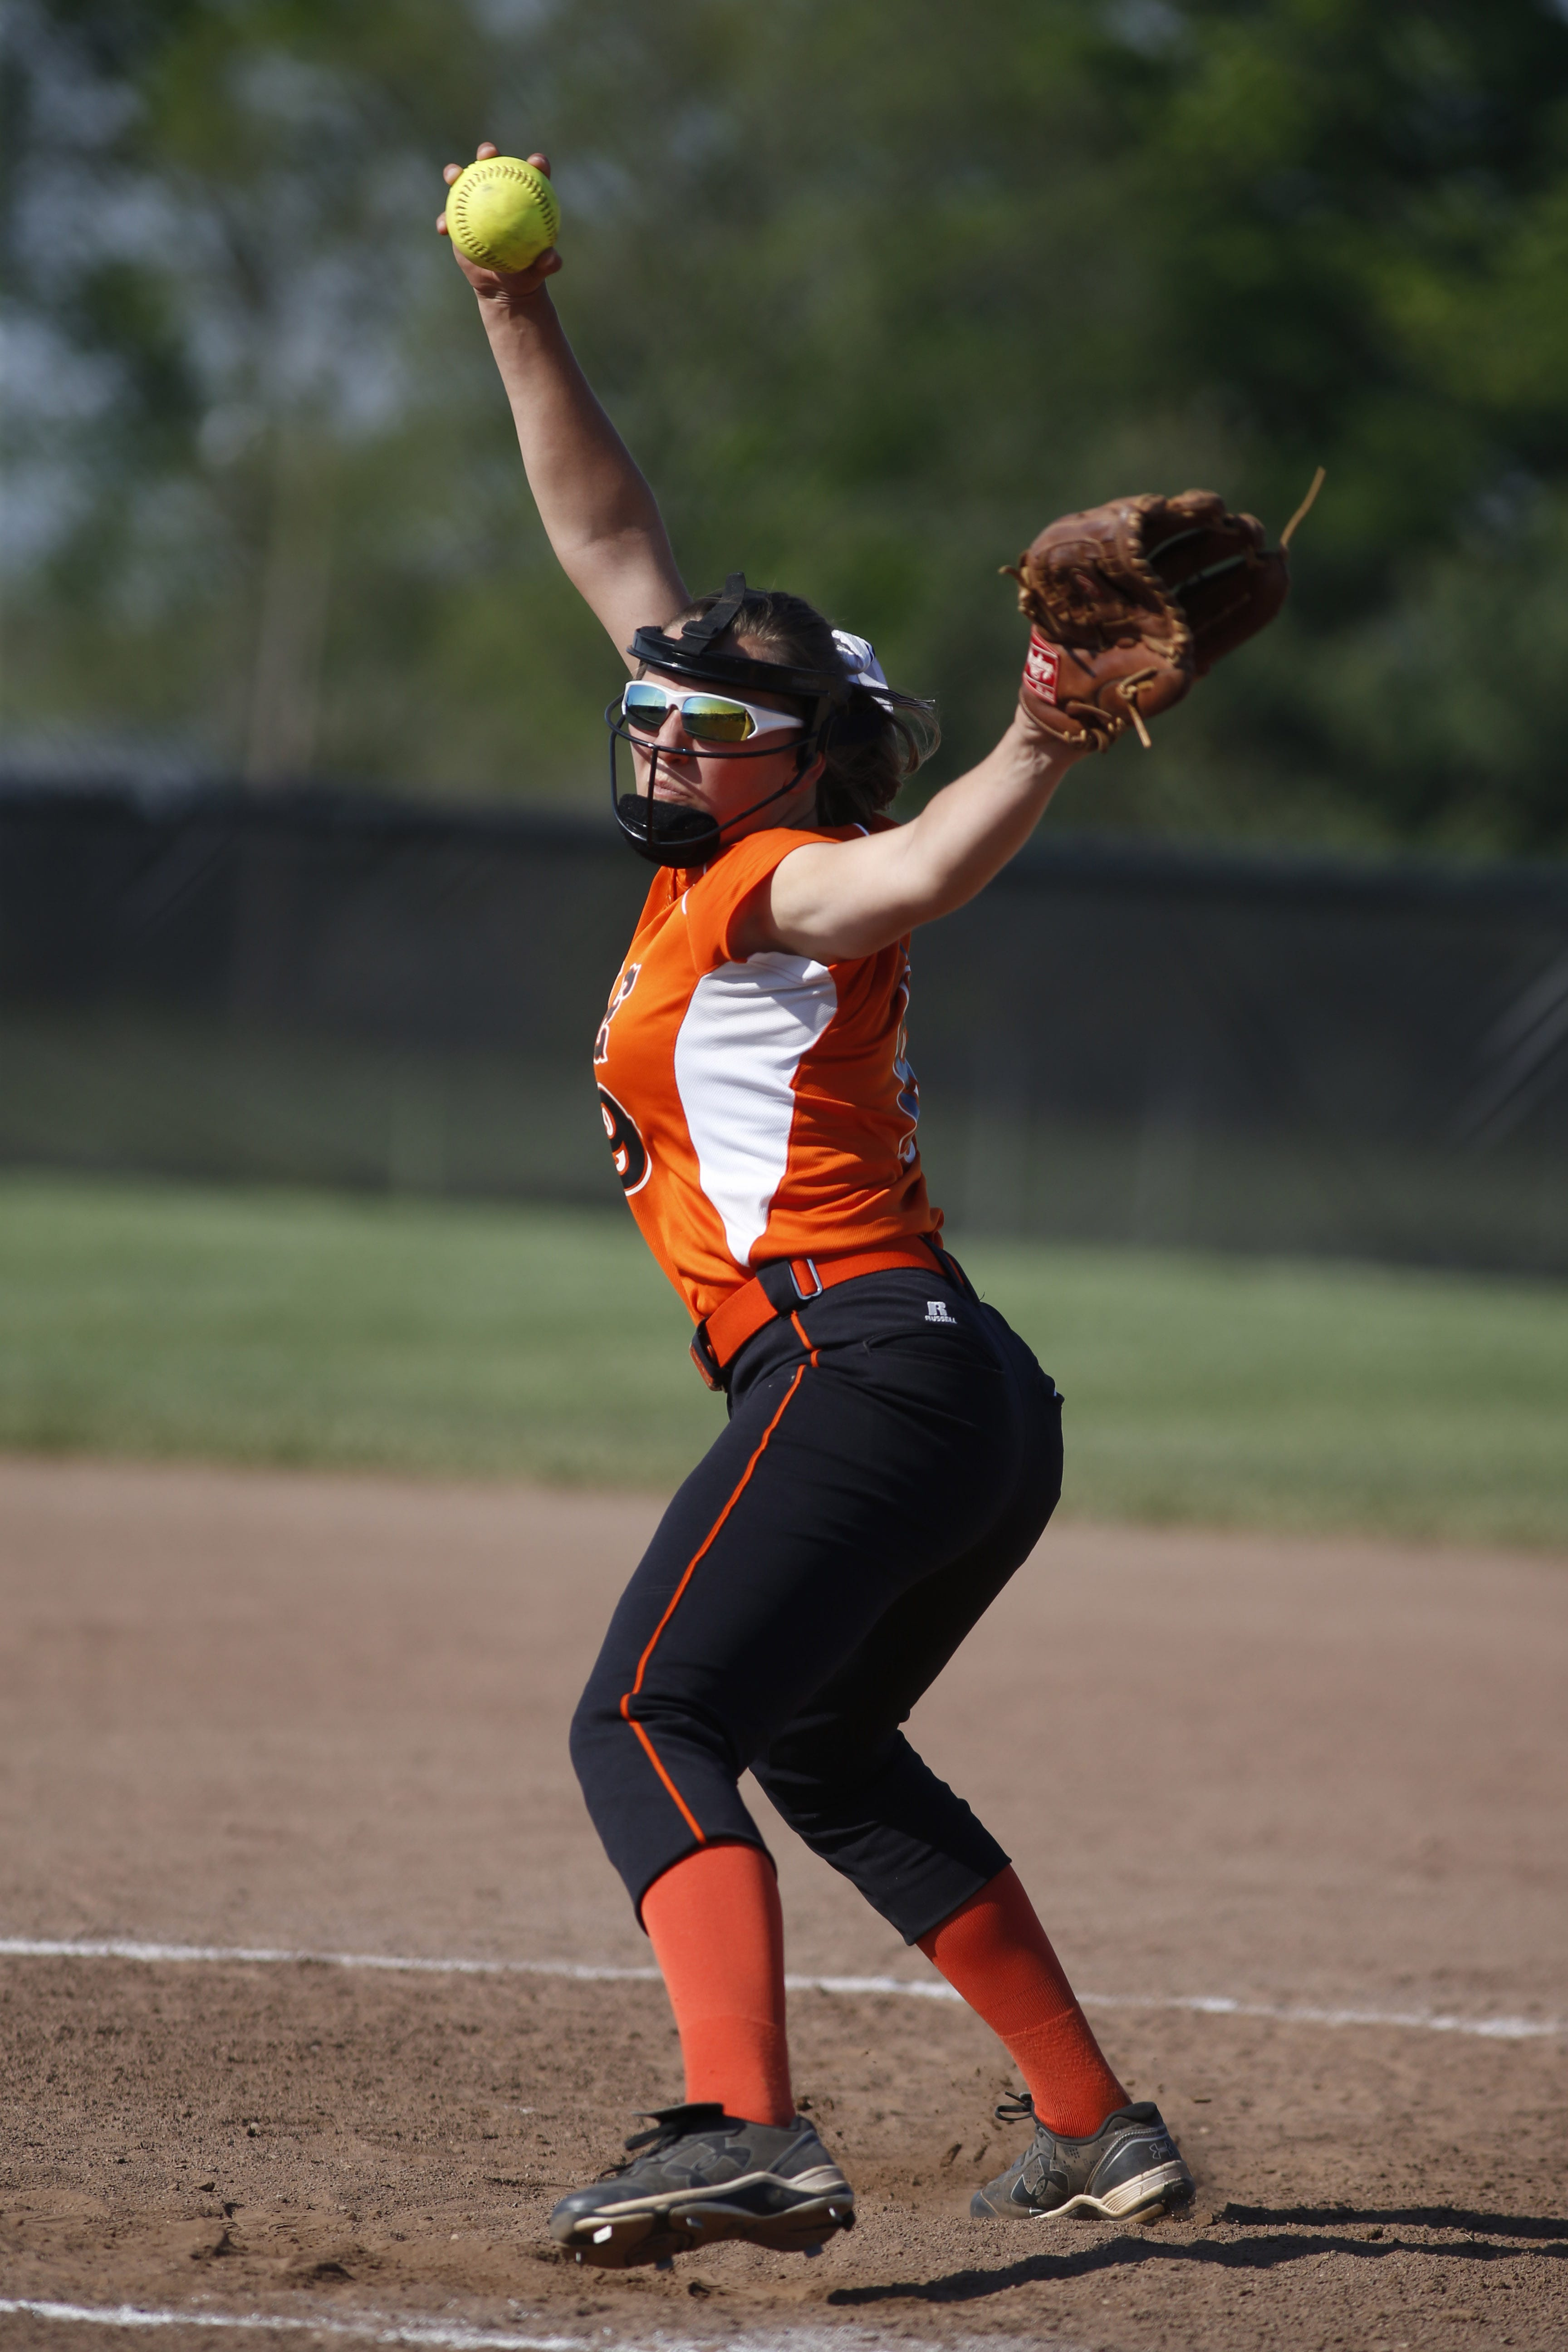 Ryle High School's Ali Crupper, pitching against Notre Dame Academy last May, is a Northern Kentucky pitcher who has worn face masks while pitching.